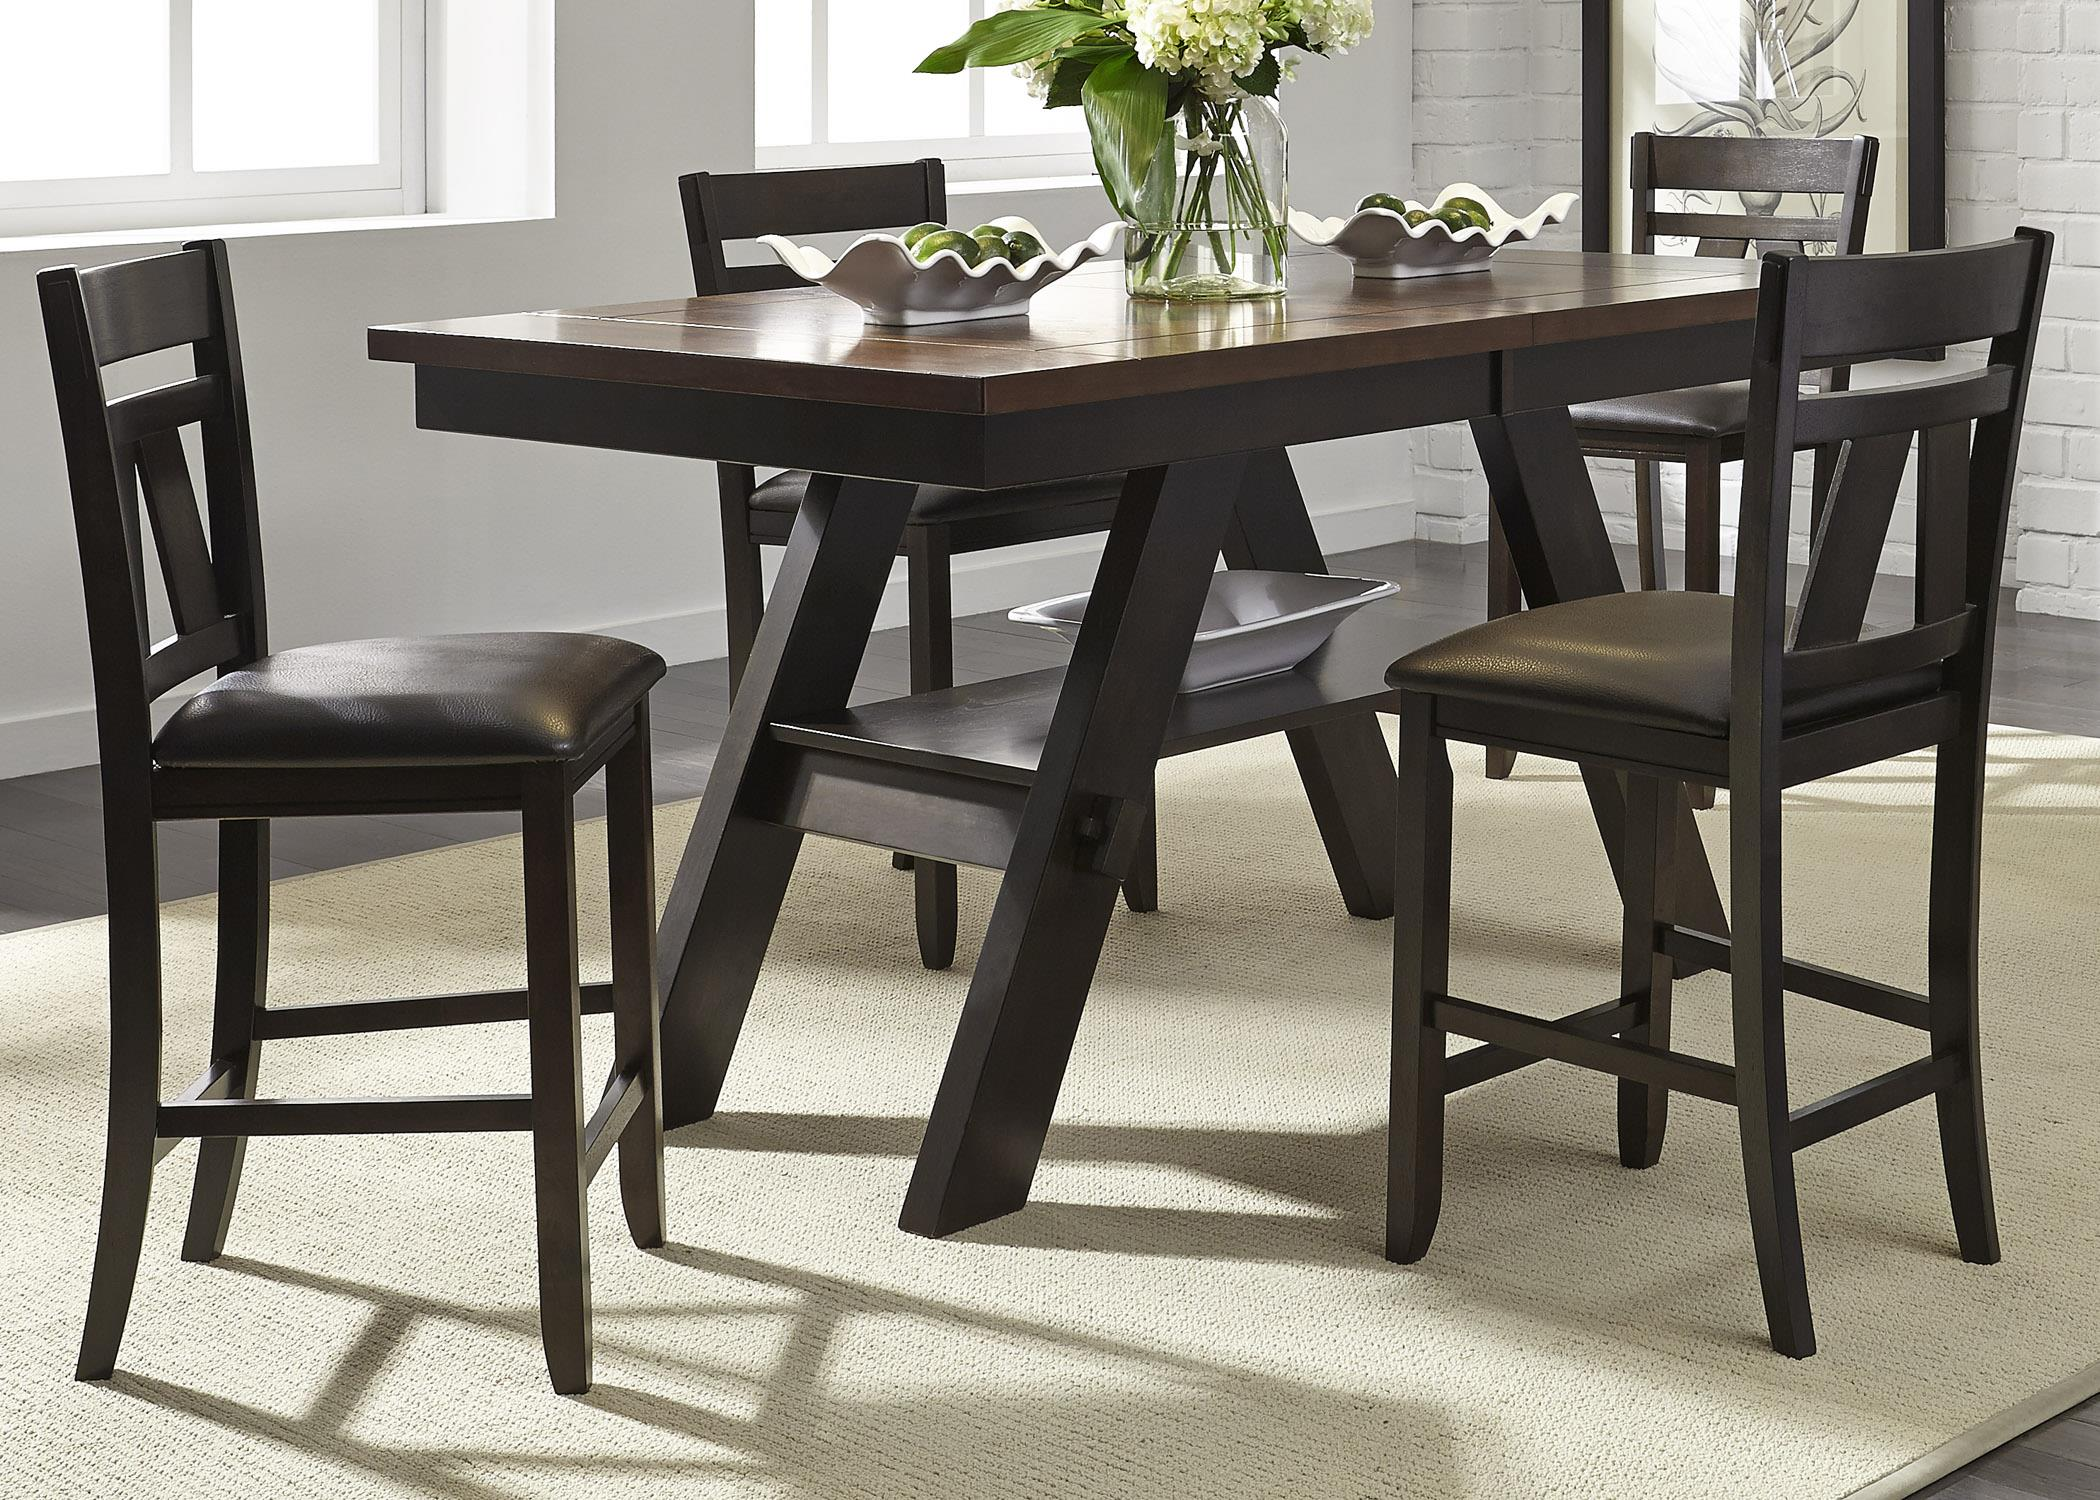 Liberty Furniture Lawson 5 Piece Gathering Table Set - Item Number: 116-CD-SET14